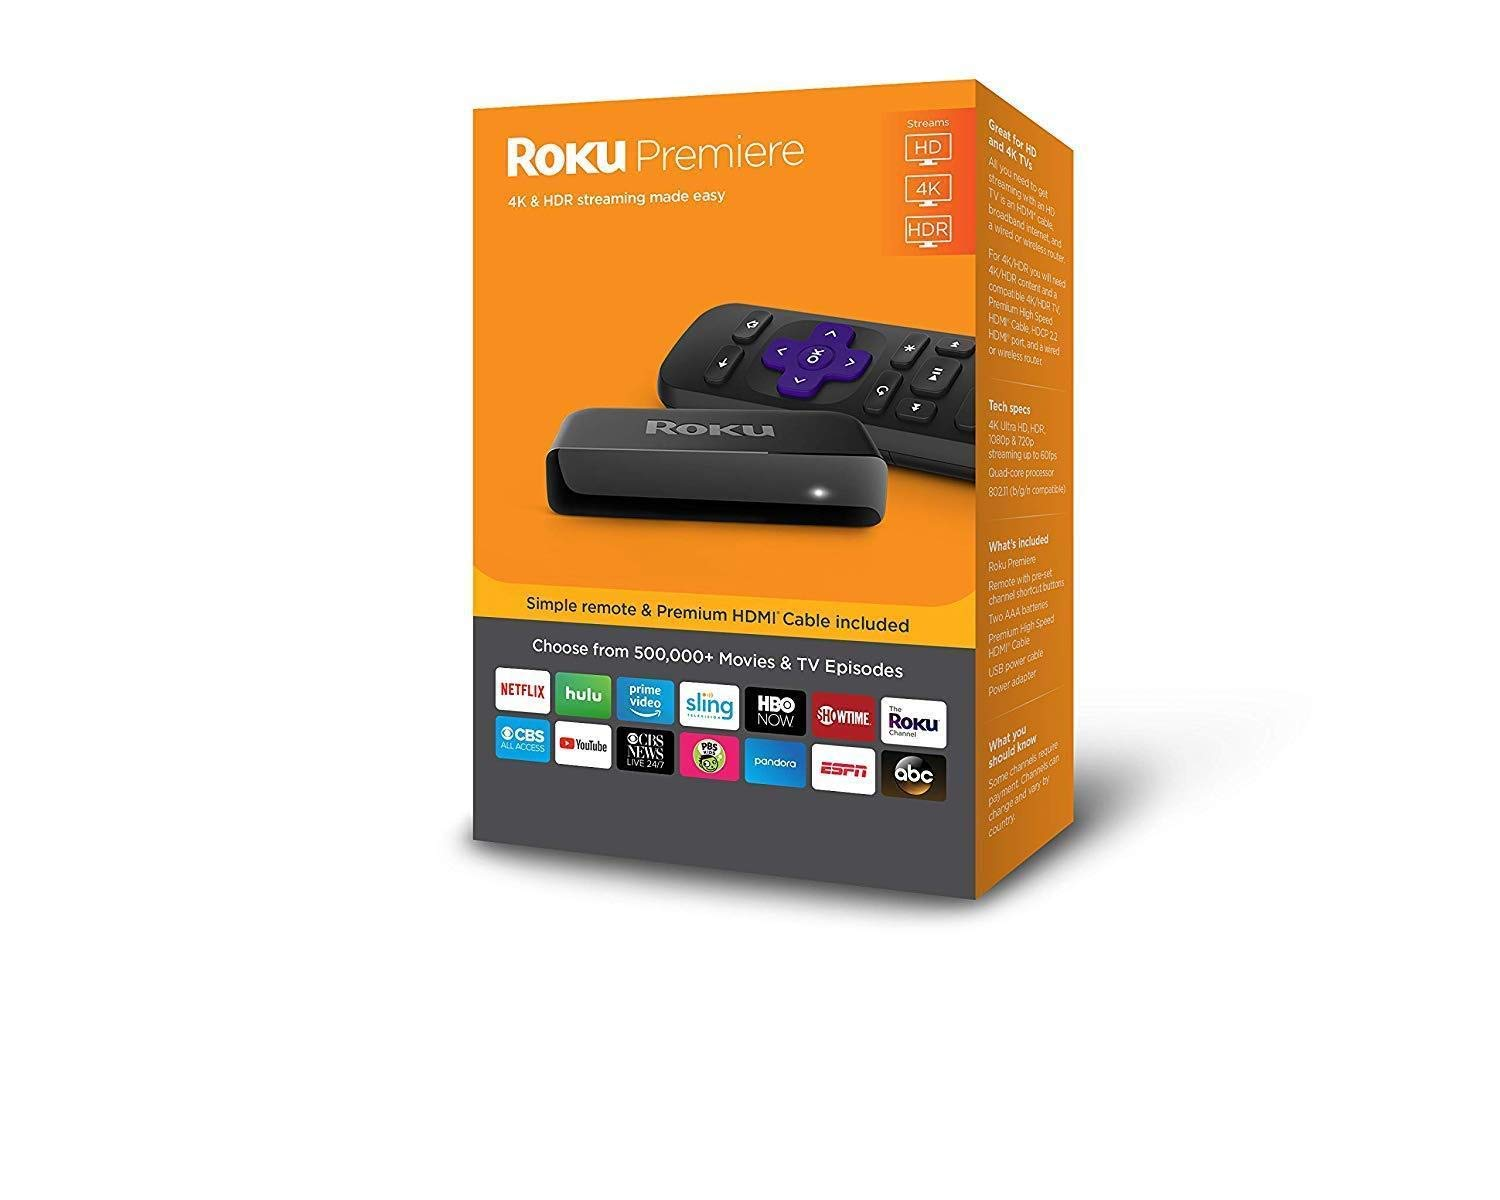 Roku Premiere HD/4K/HDR Streaming Media Player Includes Simple Remote and Premium HDMI Cable by Roku